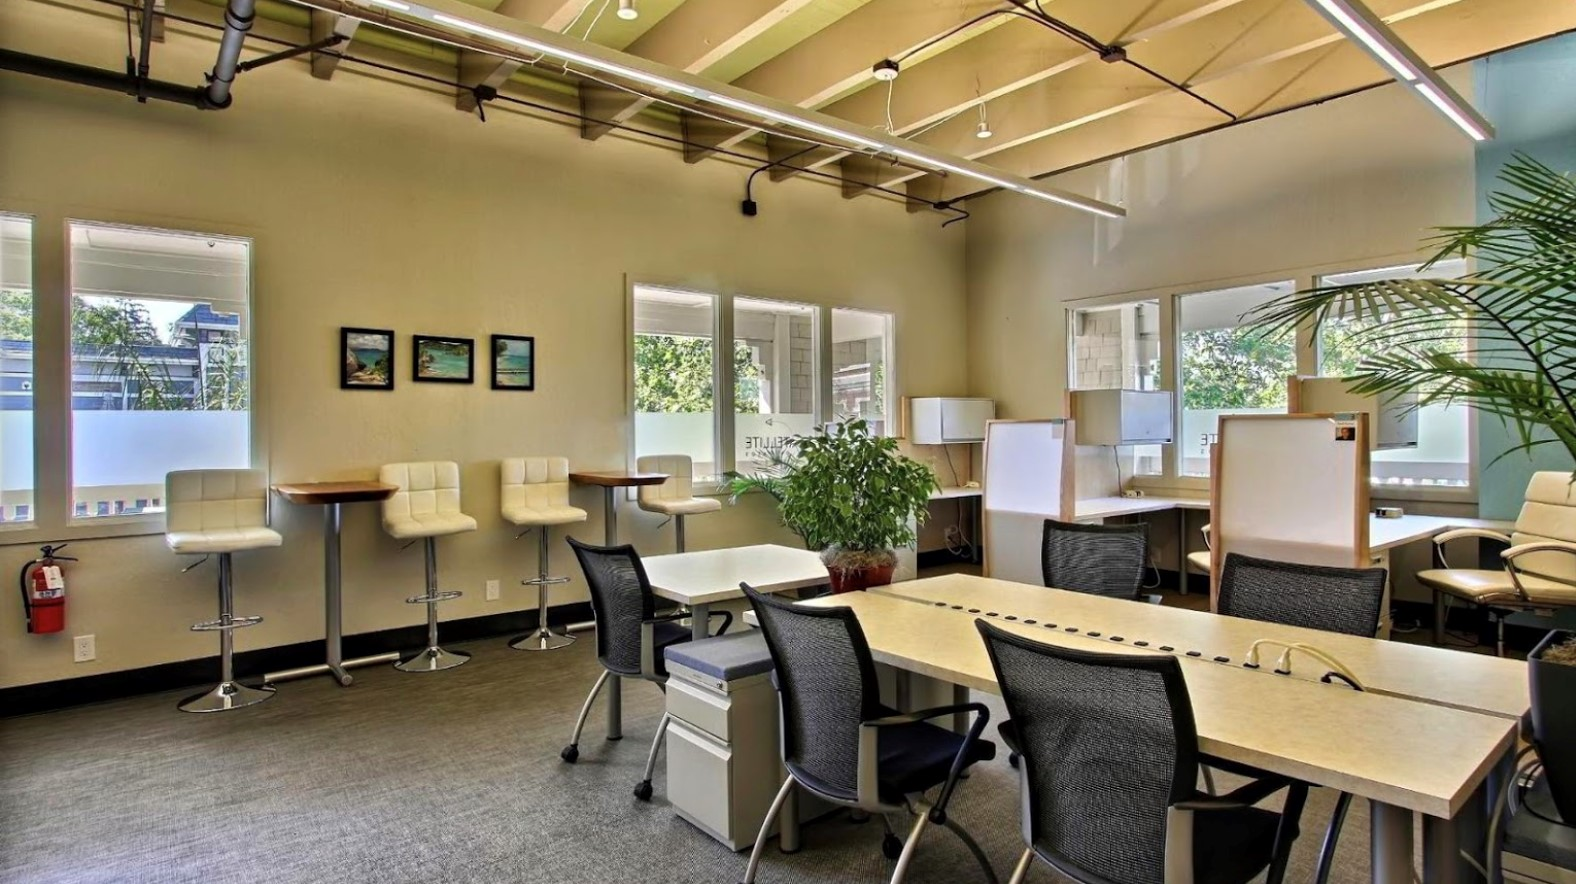 CloudVO City Guide Silicon Valley The Satellite Los Gatos Meeting Rooms and Coworking Space